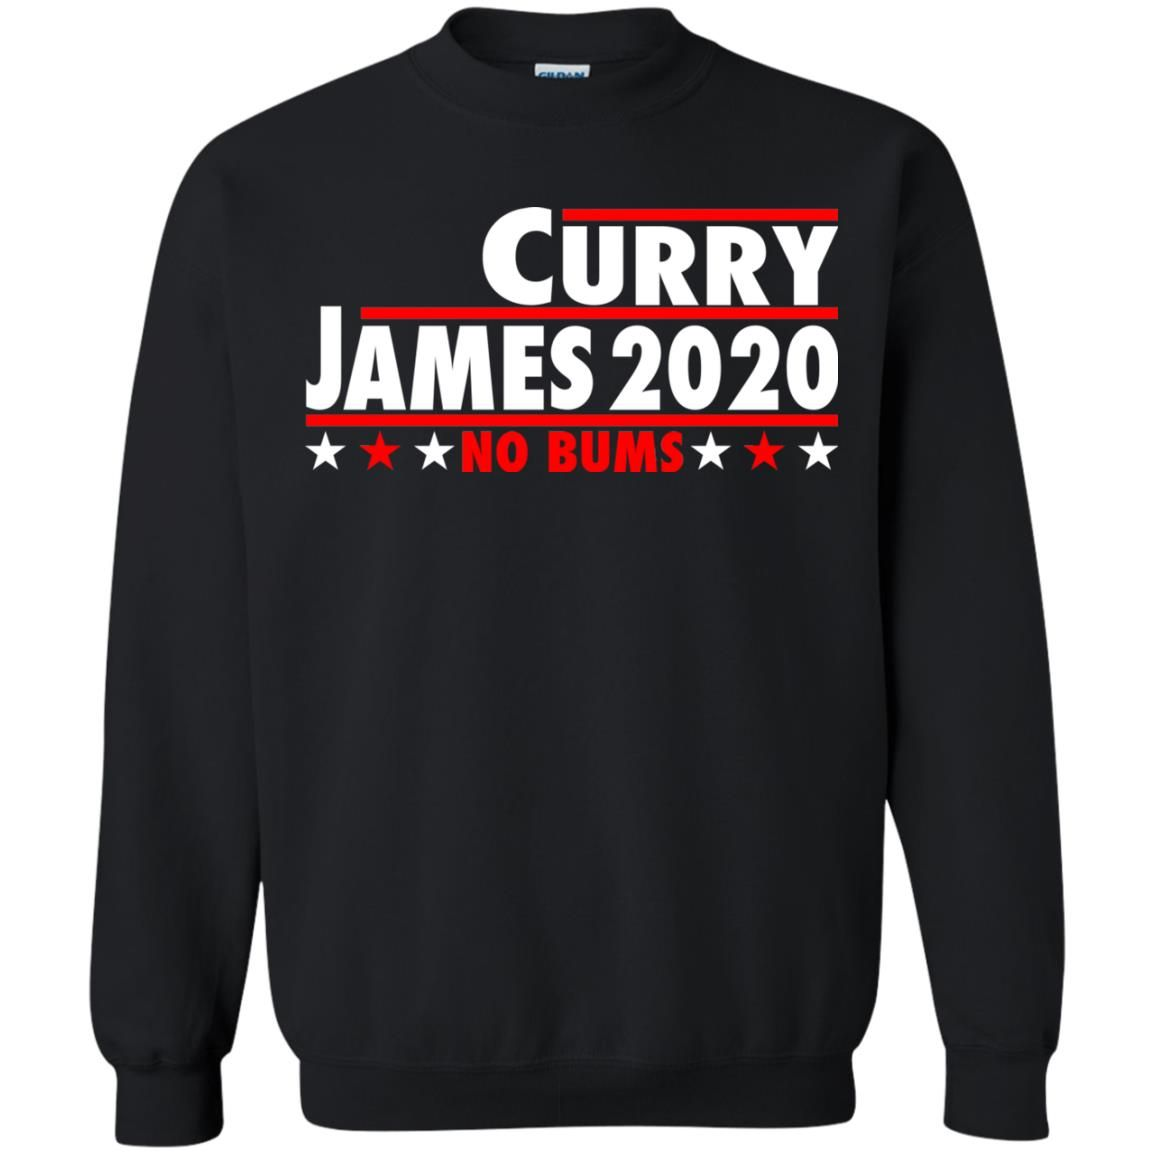 image 2028 - Curry Jame 2020 for President shirt